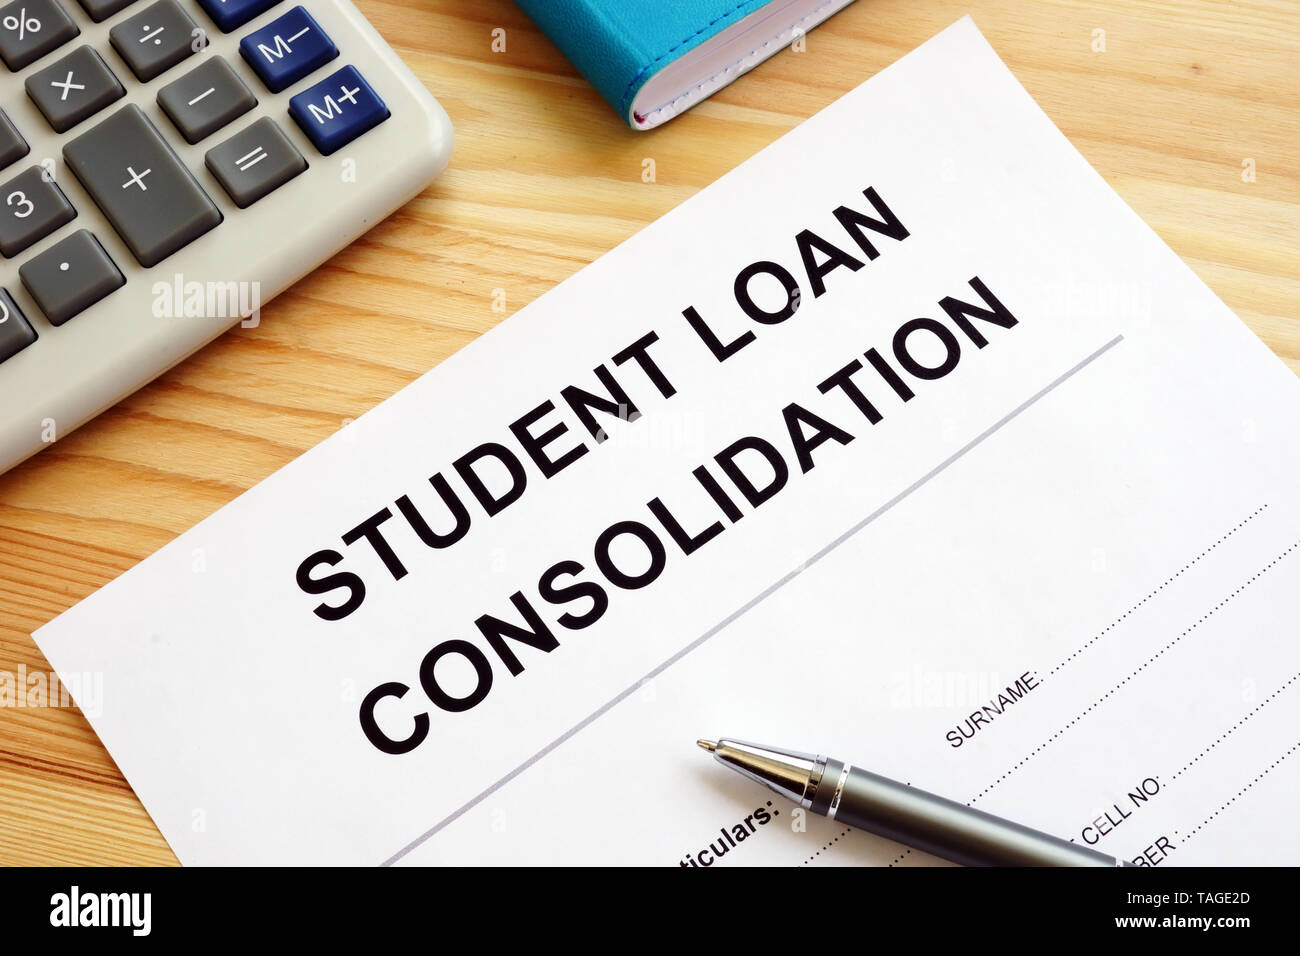 Student Loan Consolidation application, calculator and pen. - Stock Image